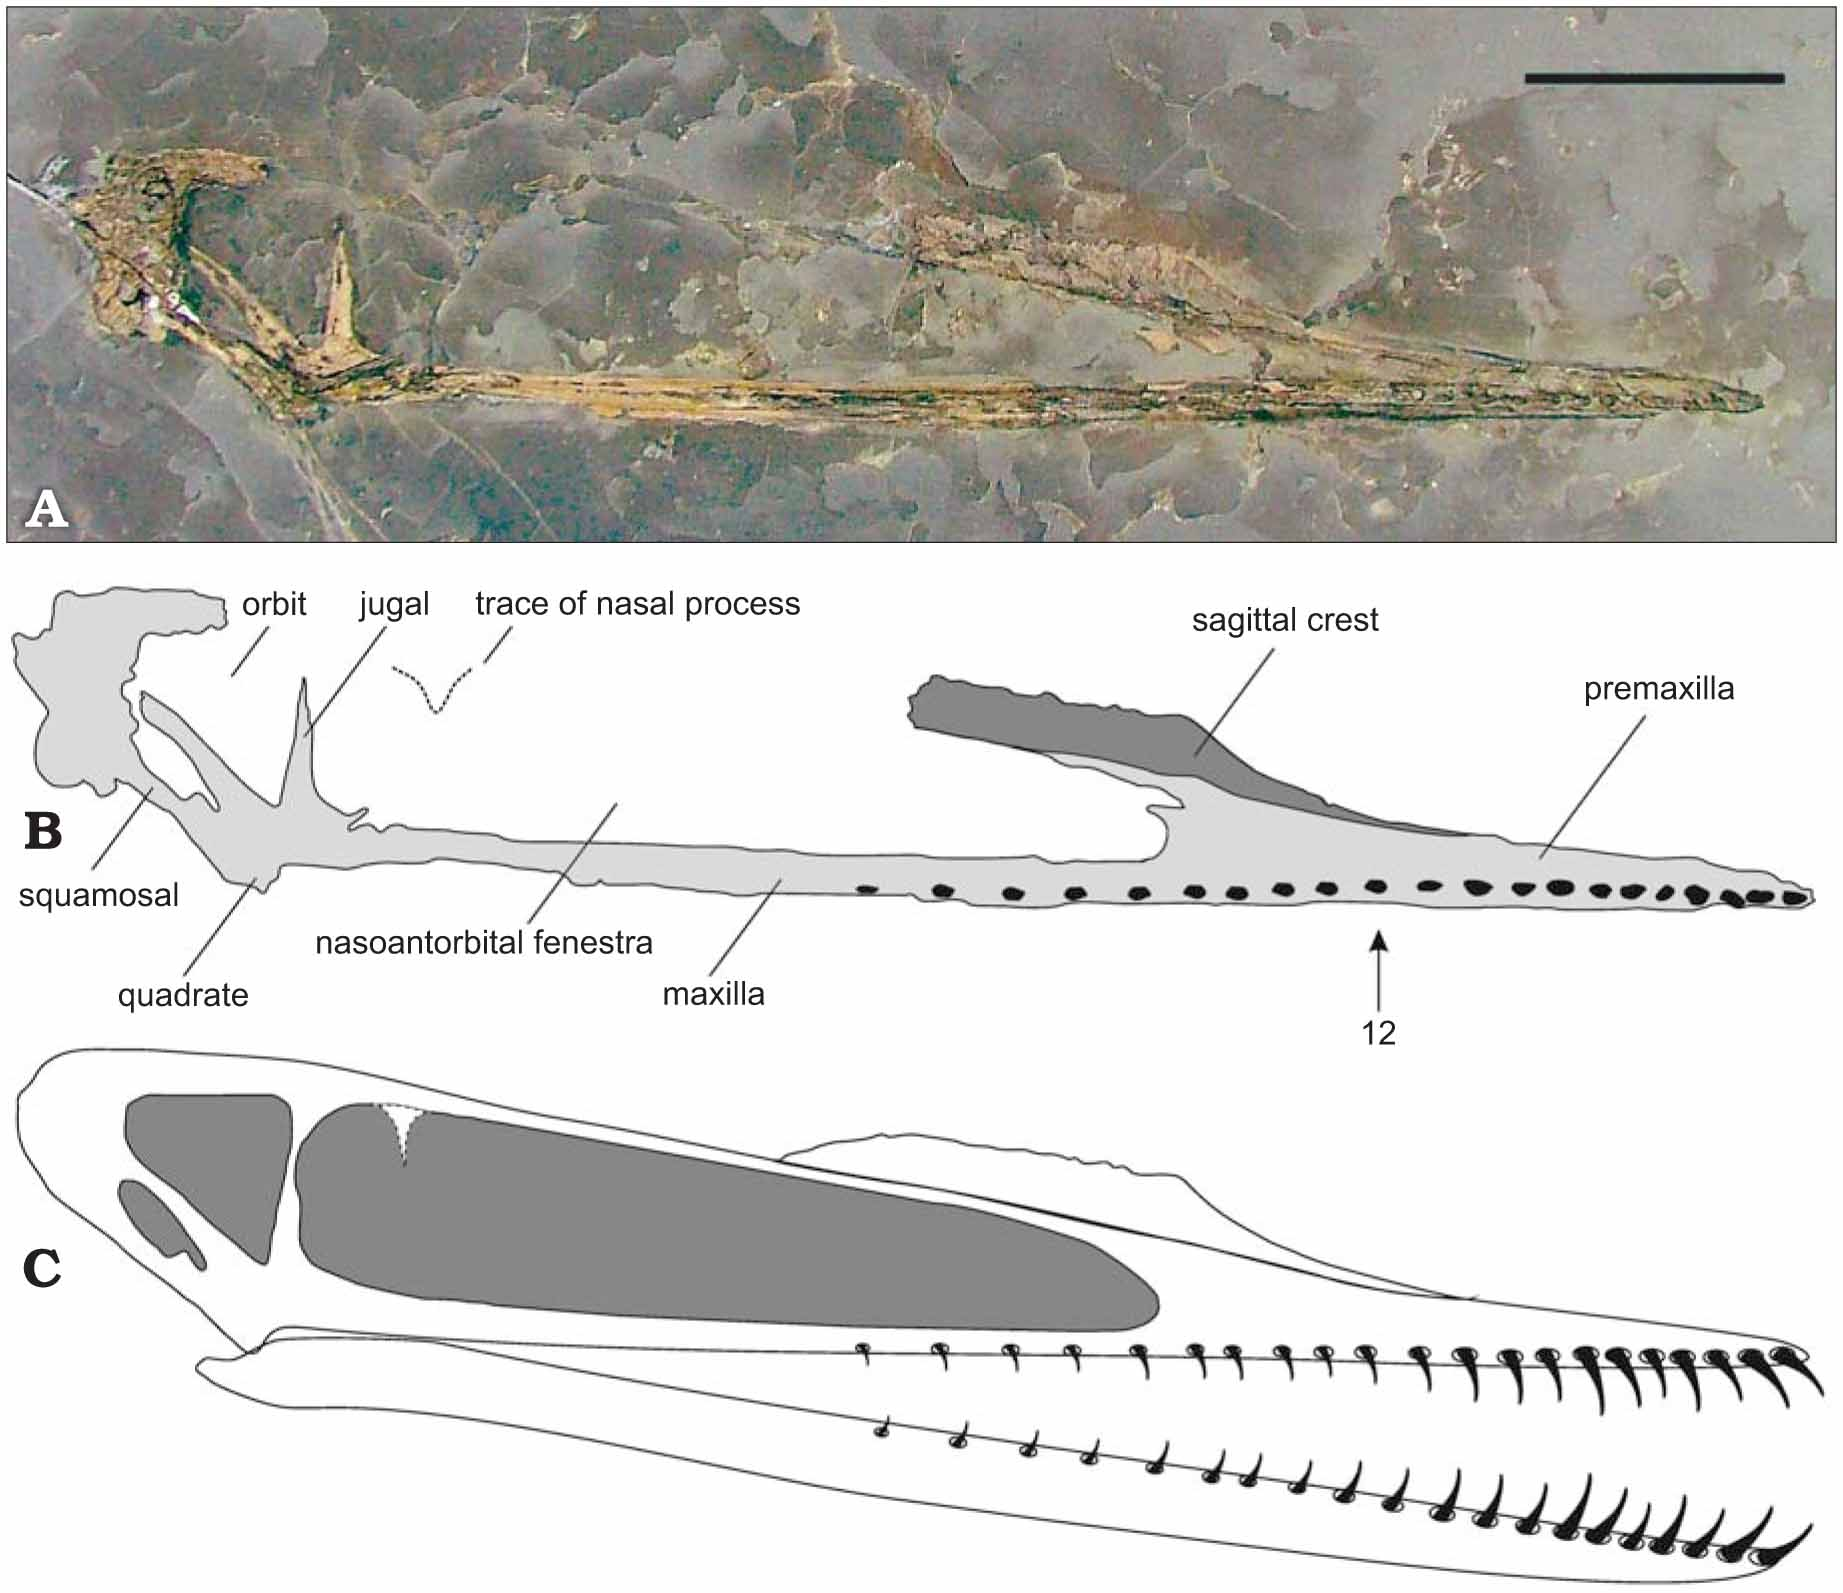 9fb47dc3c91 A New Monofenestratan Pterosaur from the Kimmeridge Clay Formation ...